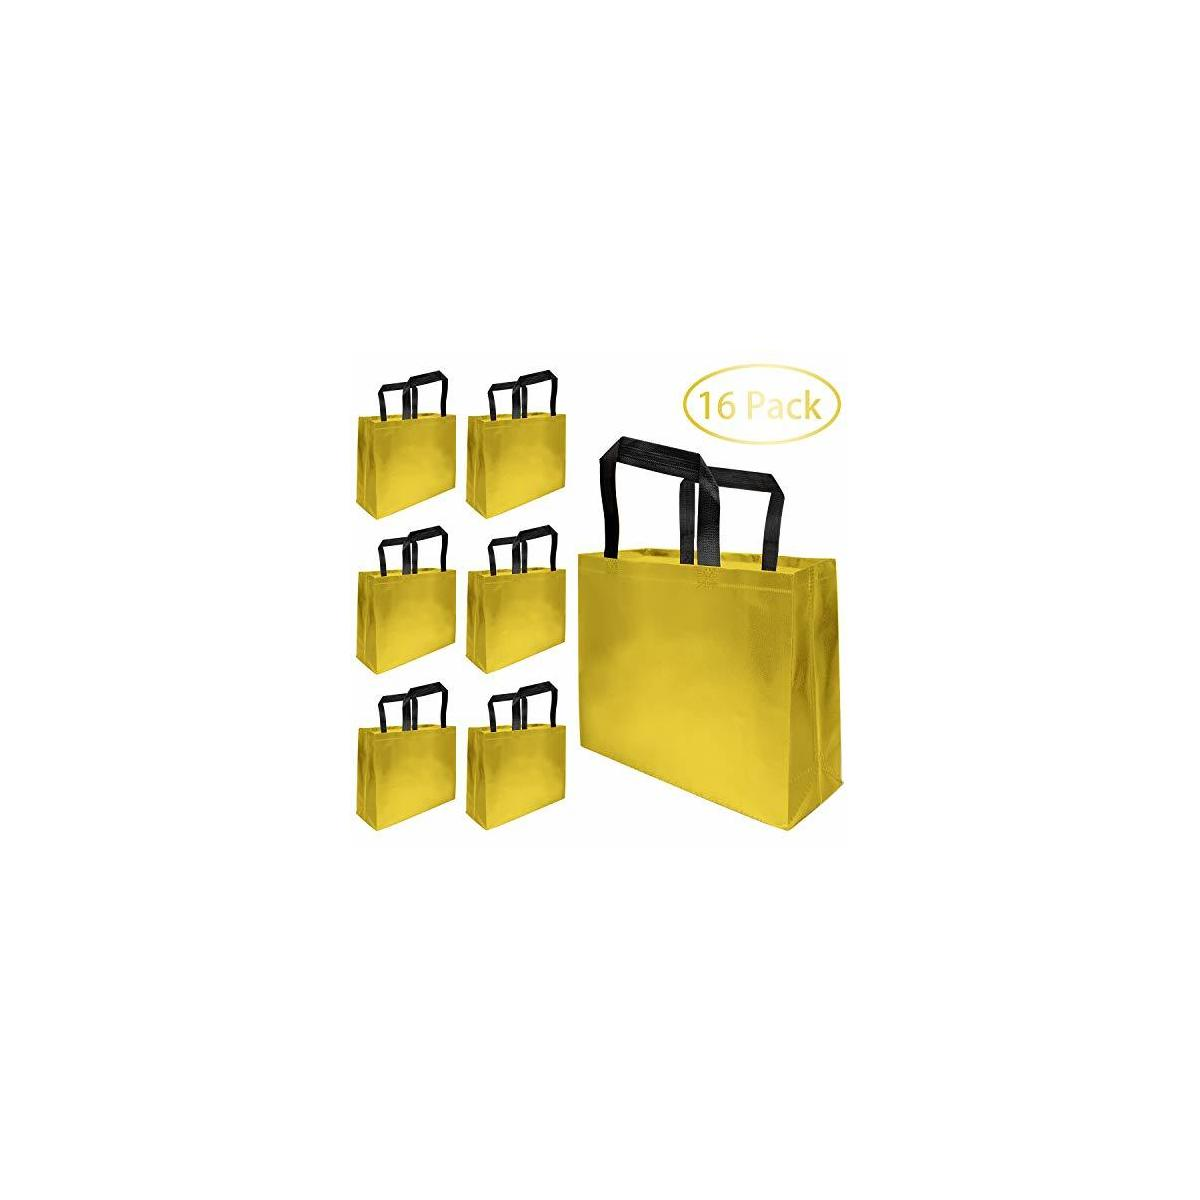 16 Pack Glossy Grocery Shopping Bags Christmas Reusable Grocery Tote Bag with Handle, Non-woven Stylish Present Bag, Gift Bag, Goodies Bag, Promotional Bag for Party, Wedding, Event, Birthday (Gold)